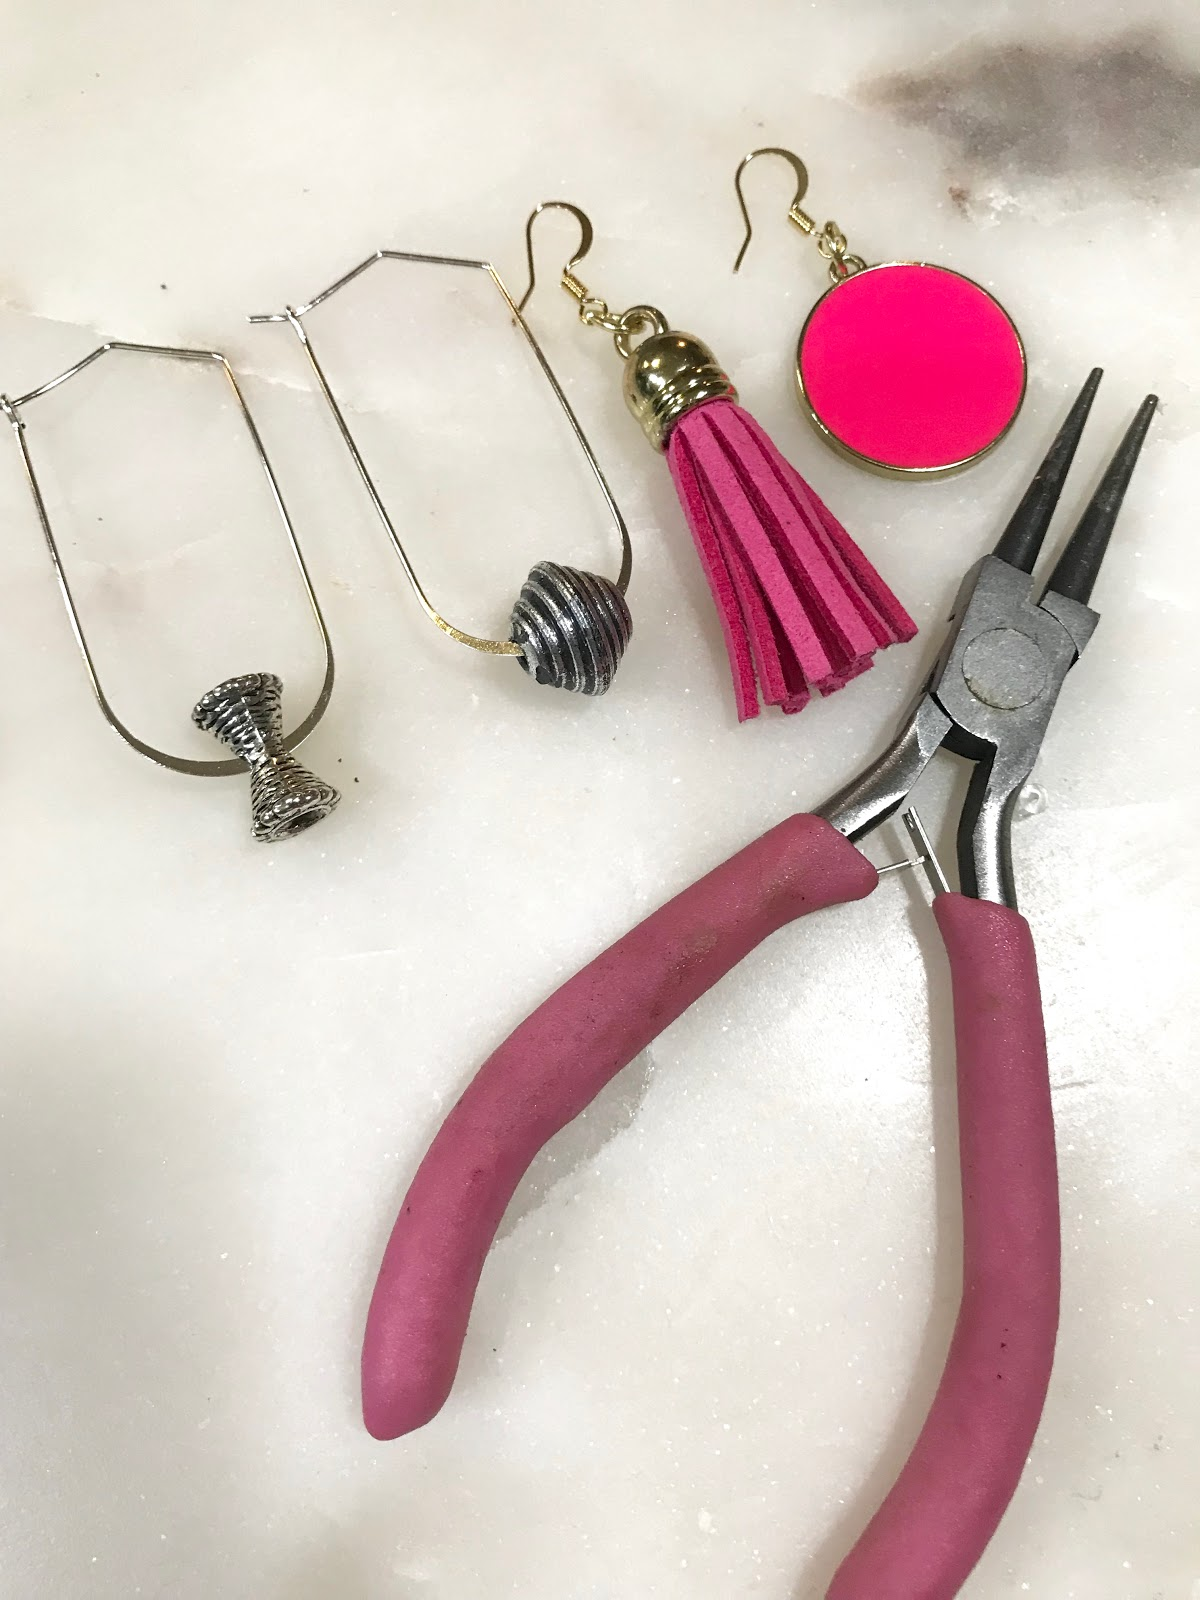 Image: The complete look of making earrings. Items used jump rings, earring hooks and needle nose pliers